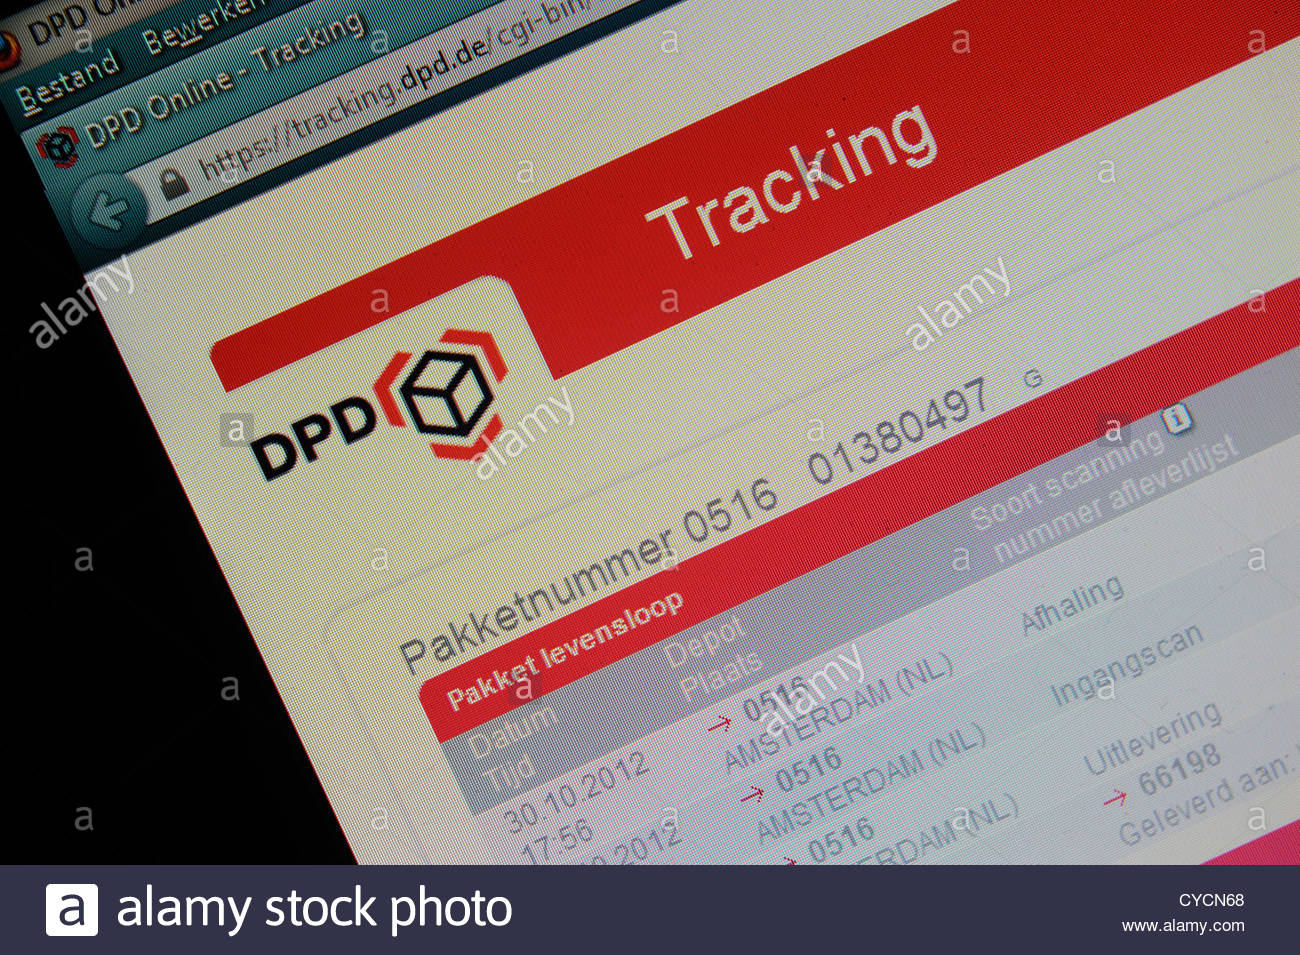 DPD parcel tracking website allowing customers the opportunity to trace the route of their packages to their door. - Stock Image